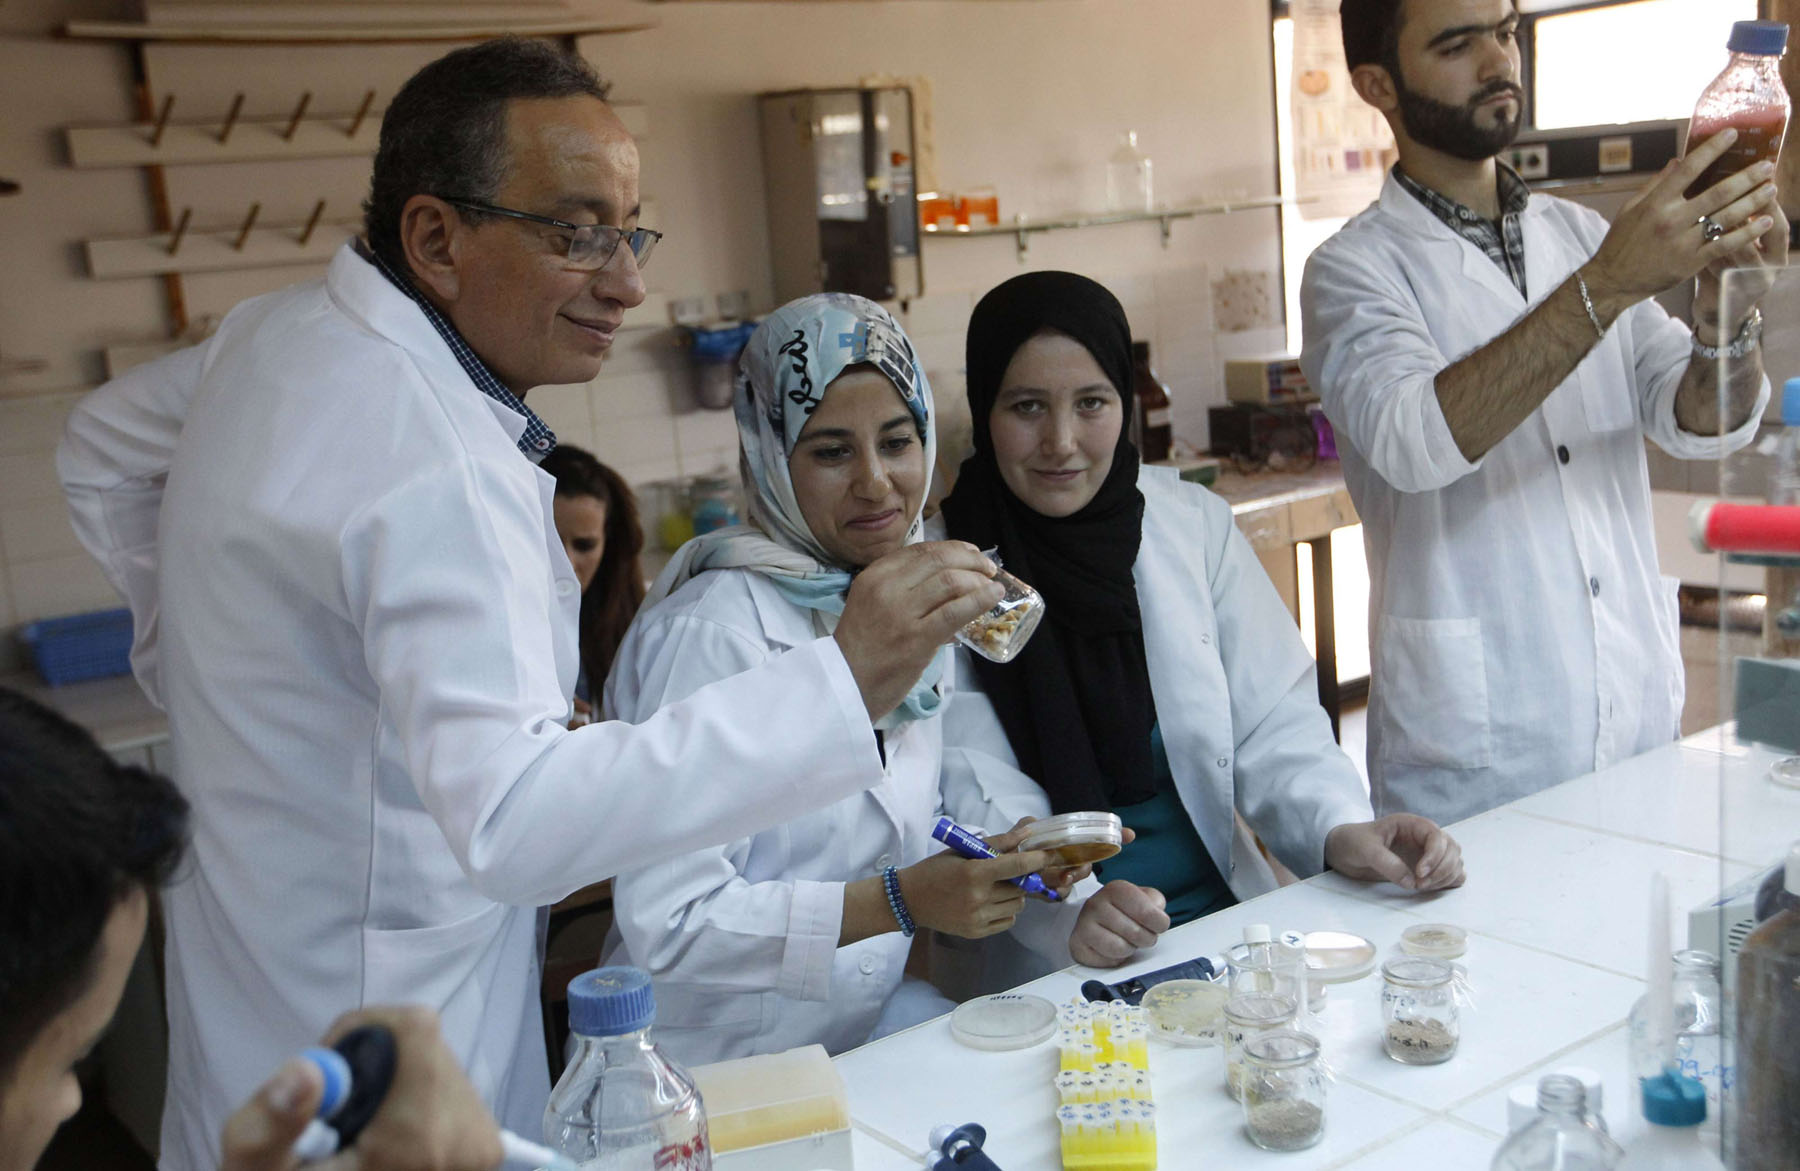 A focus on health and education. A Moroccan professor works with his team at the Sidi Mohamed Ben Abdellah University in Fez.     (AFP)